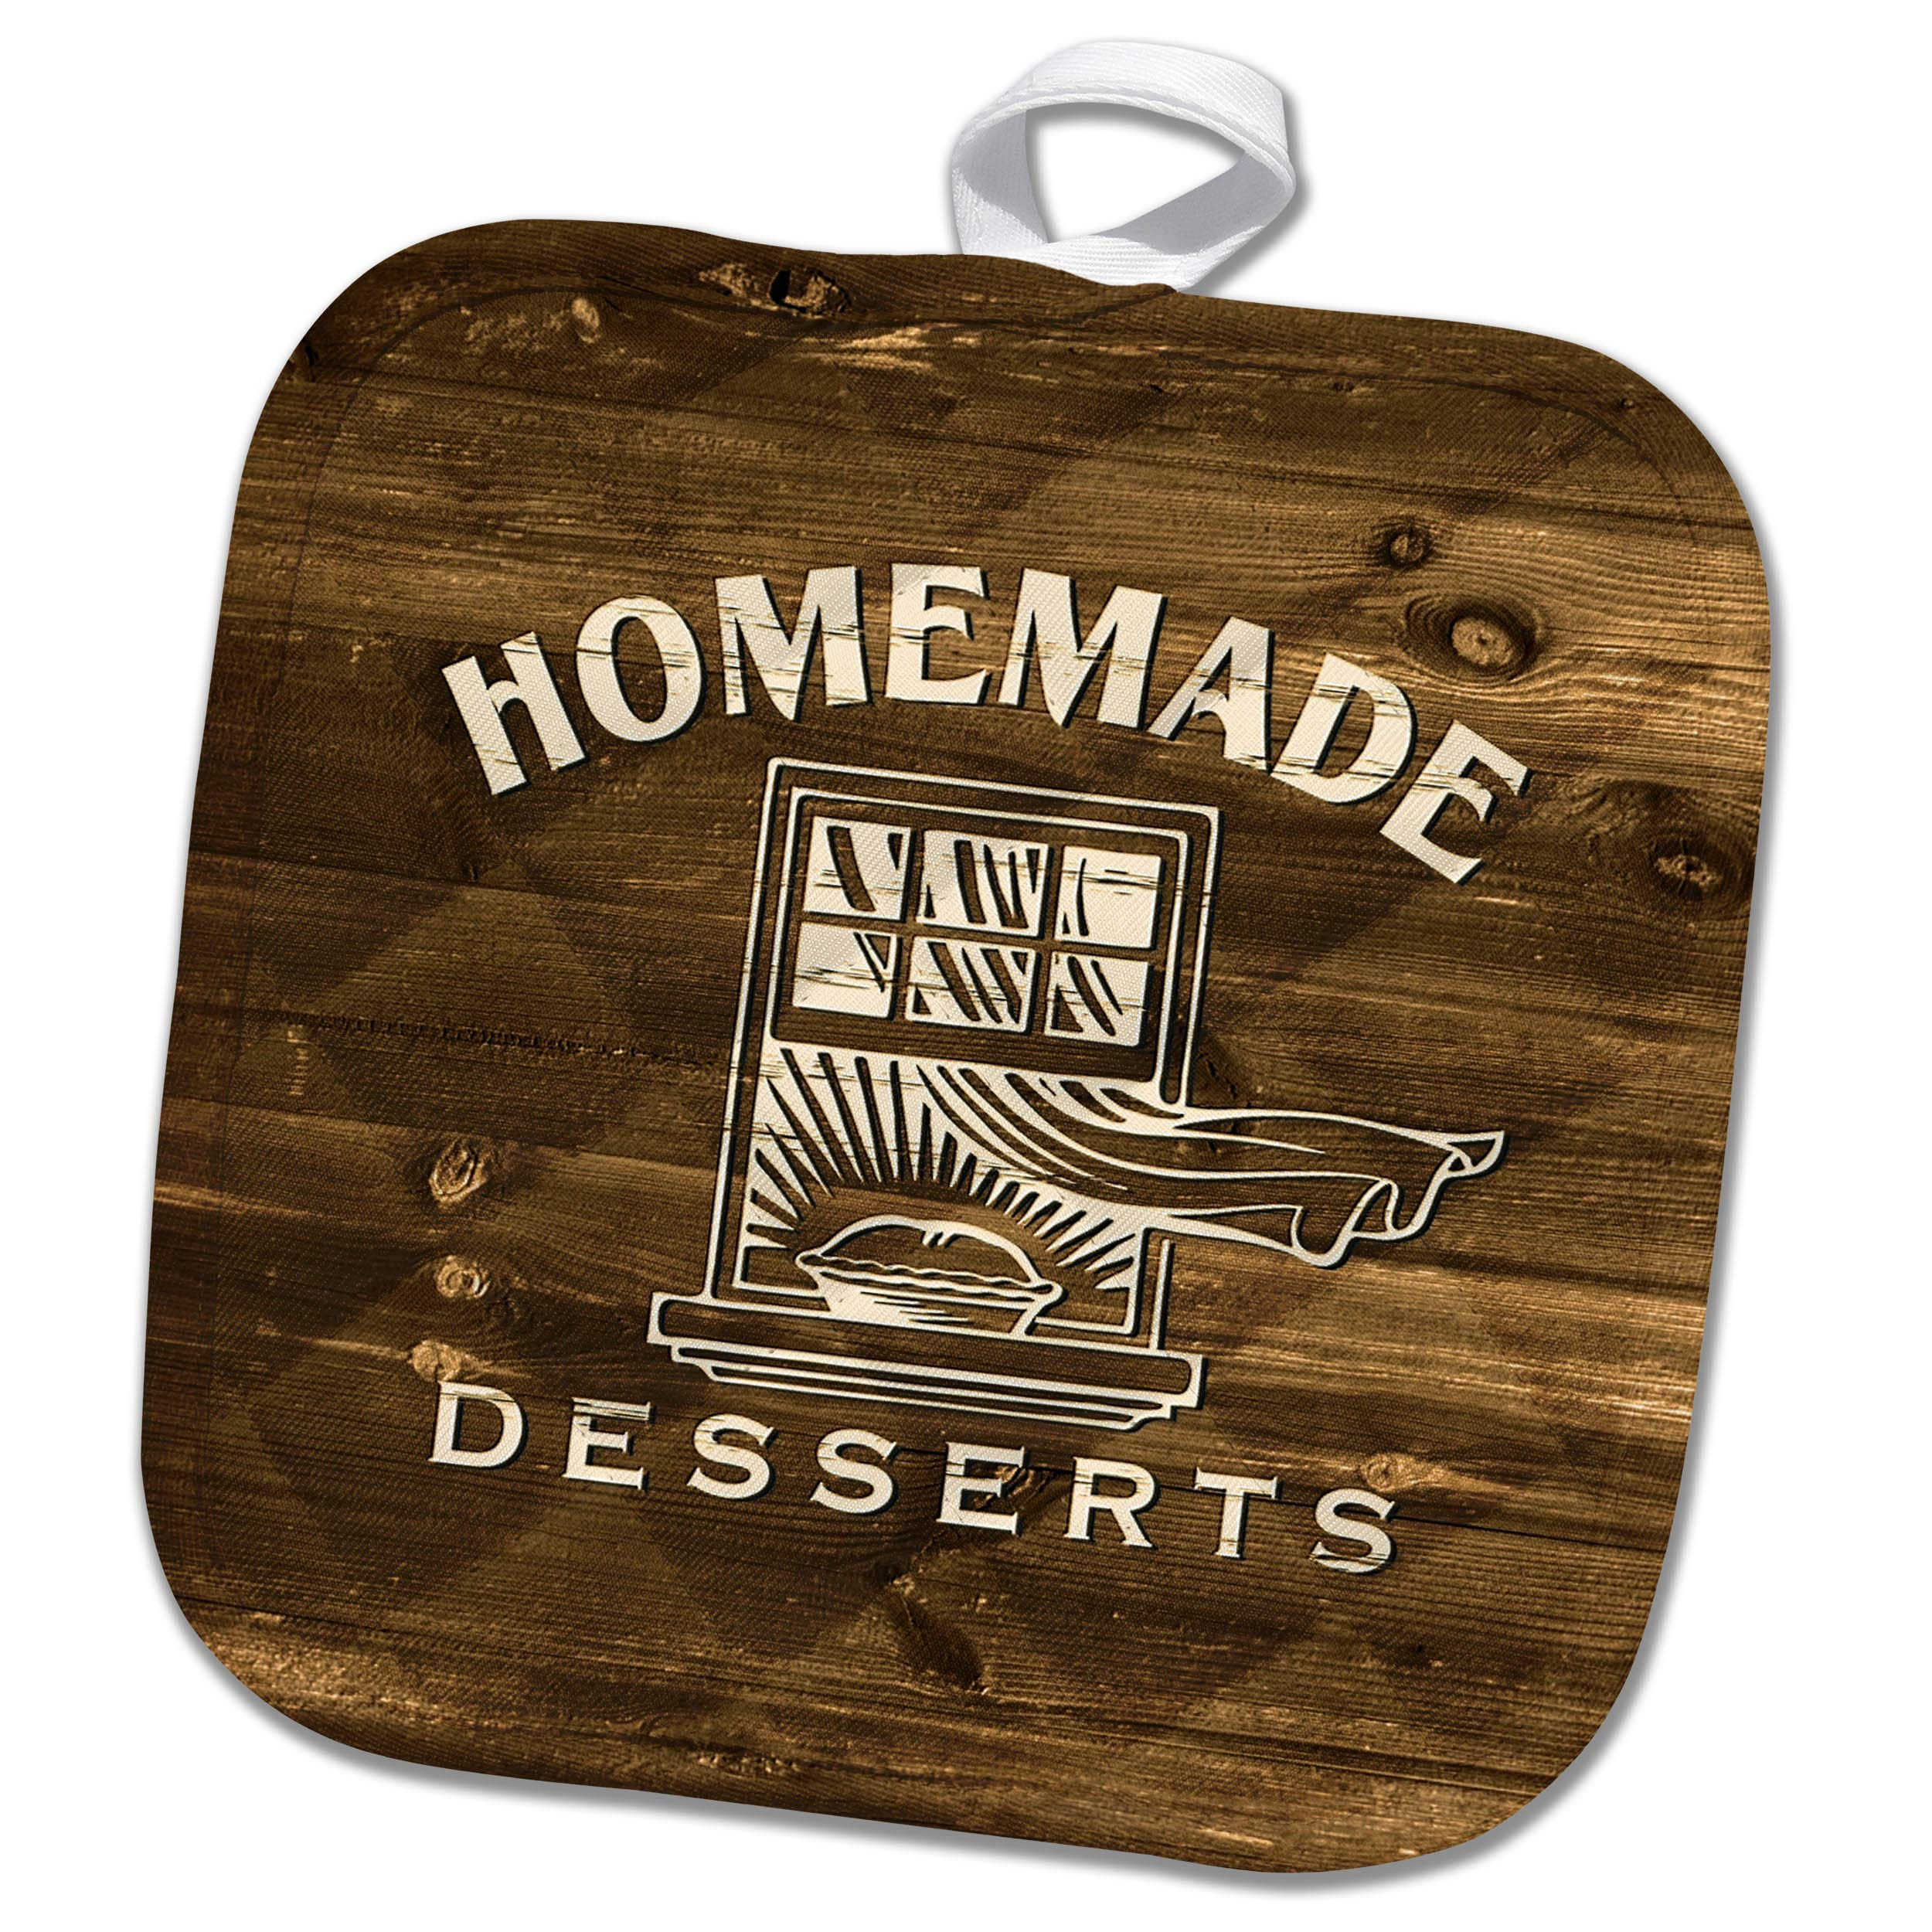 3dRose Russ Billington Designs - Homemade Desserts- Cream Text on Brown Wood Effect- not Actual Wood - 8x8 Potholder (PHL_293747_1) by 3dRose (Image #1)